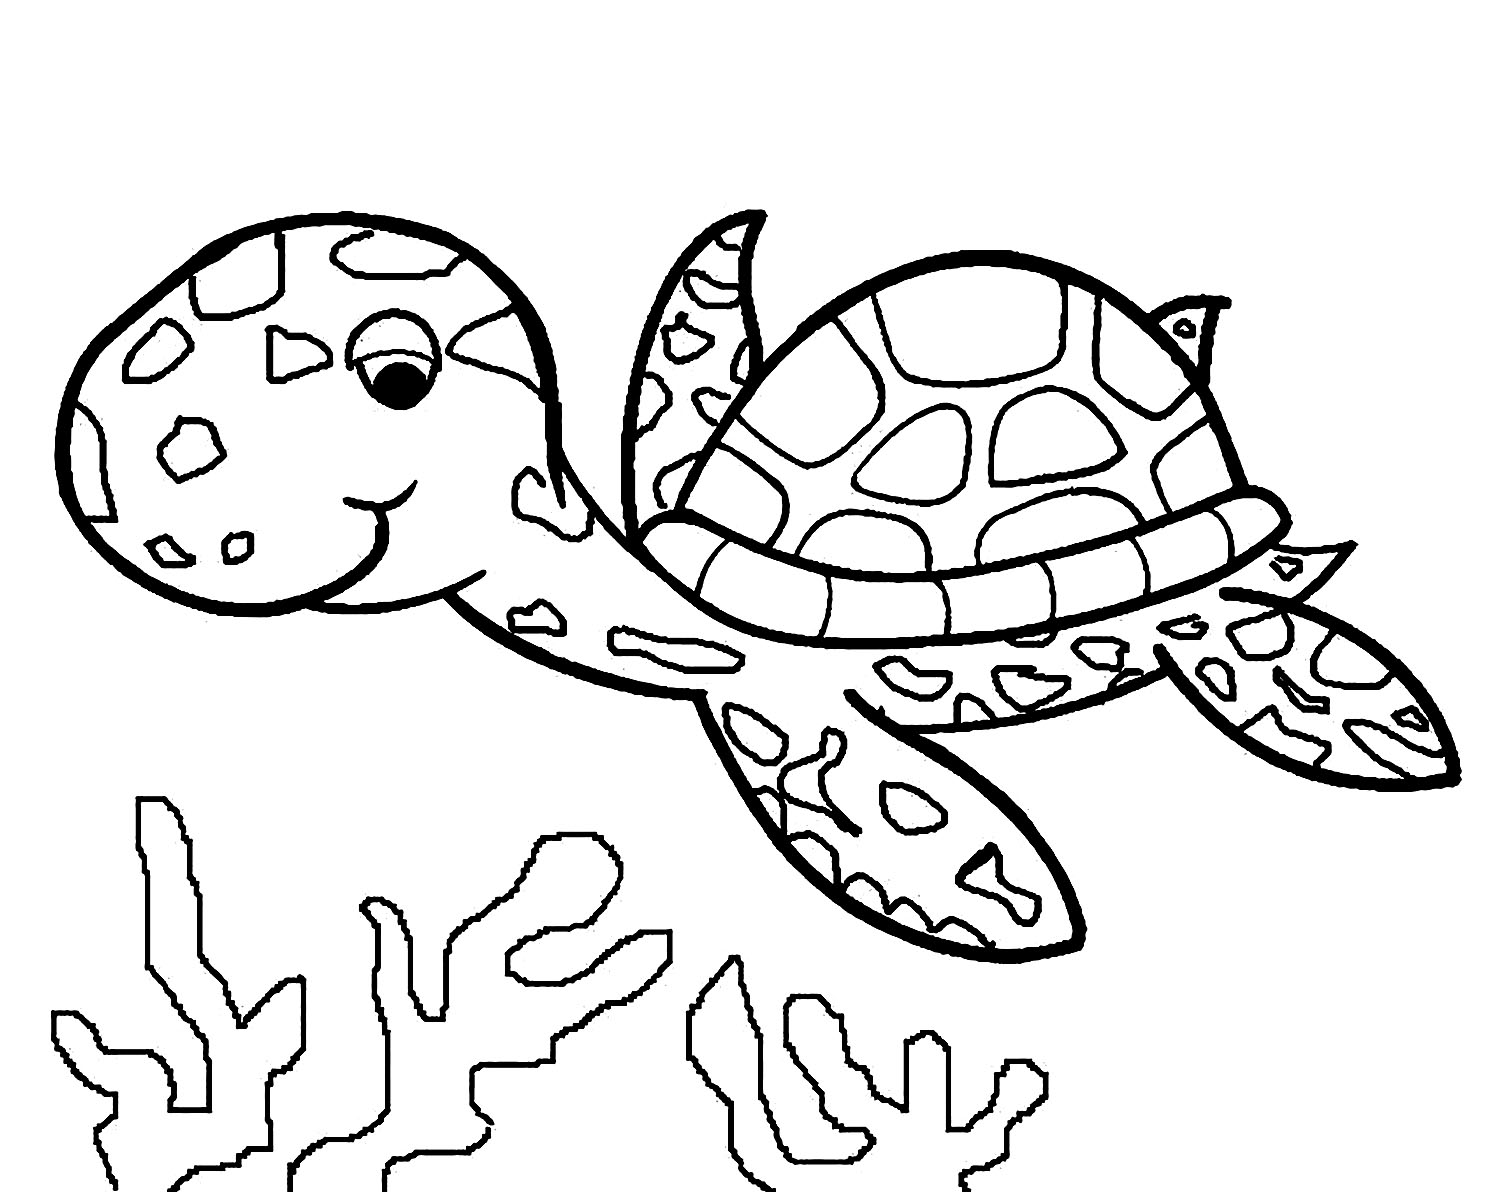 turtle pictures to color turtles coloring pages download and print turtles pictures turtle color to